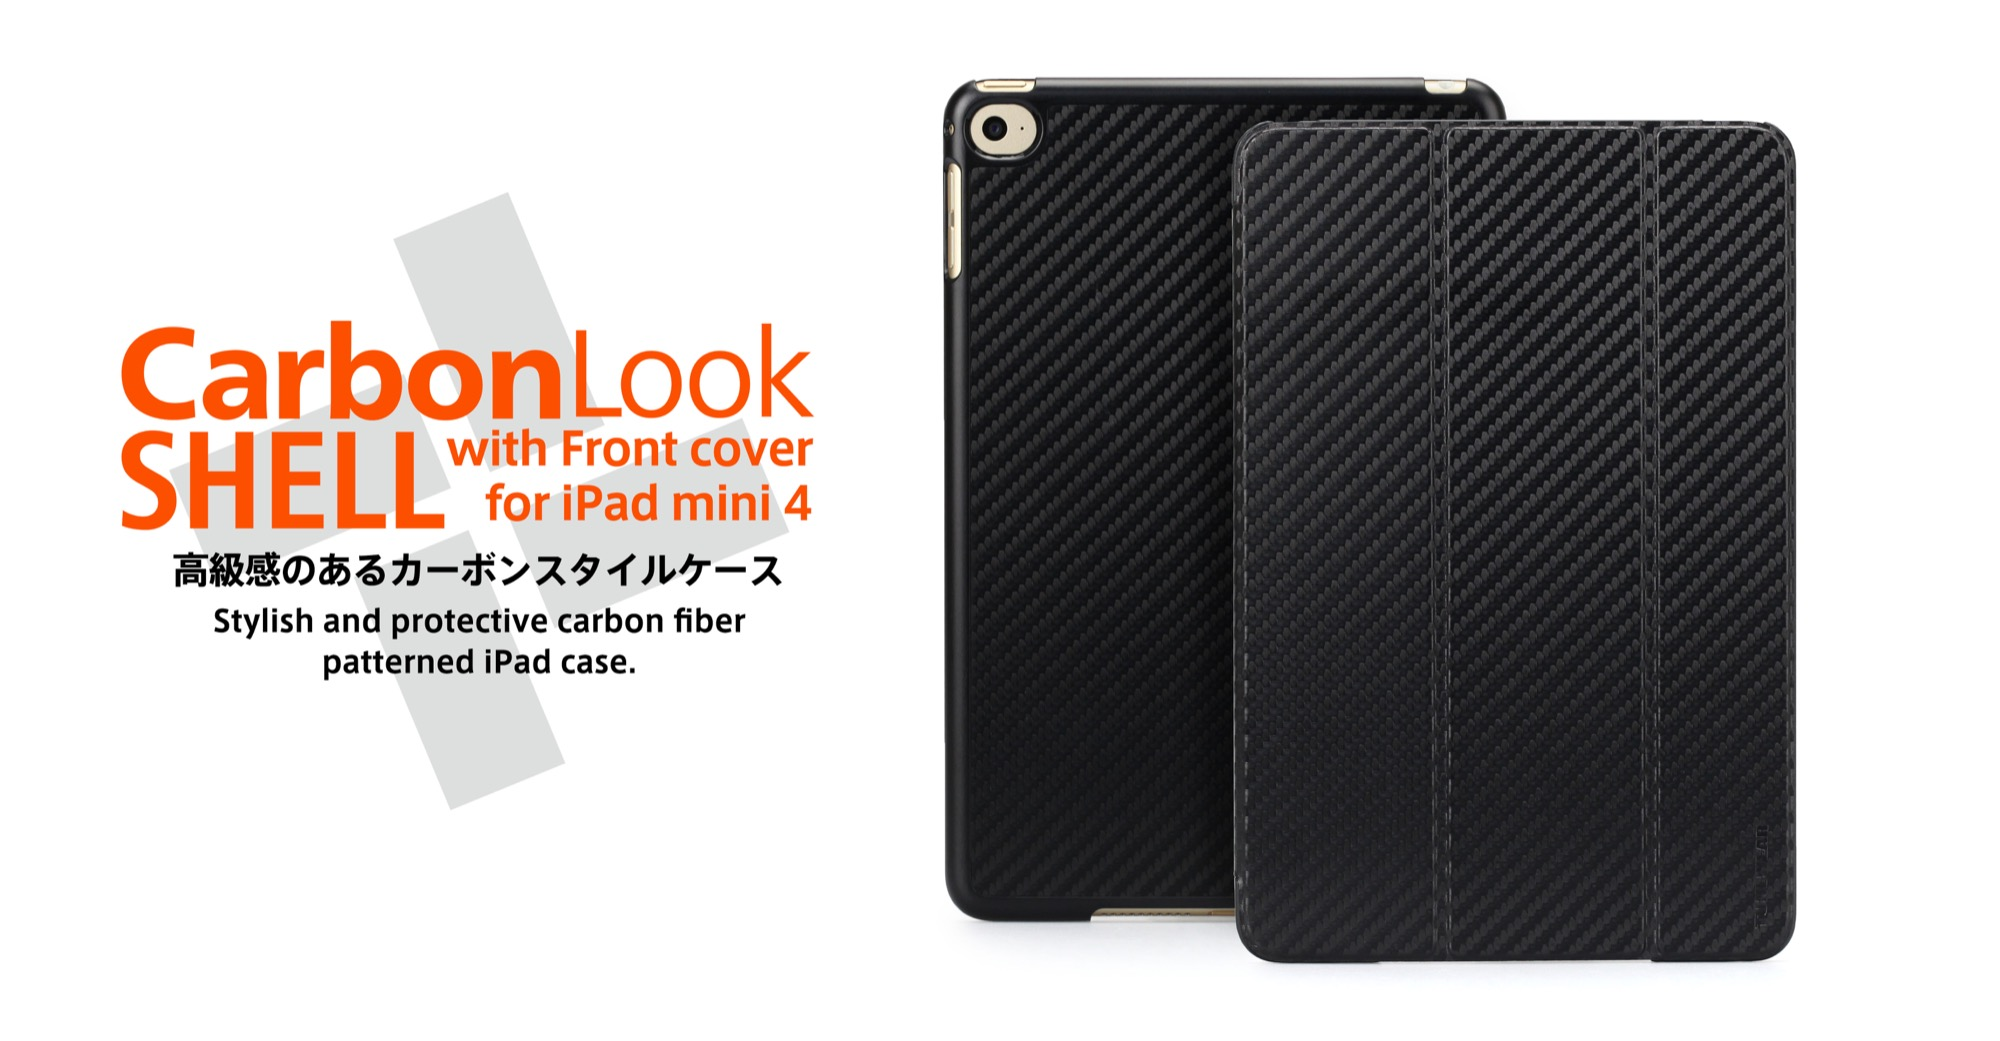 carbonlook shell with front cover for ipad mini 4 tunewear